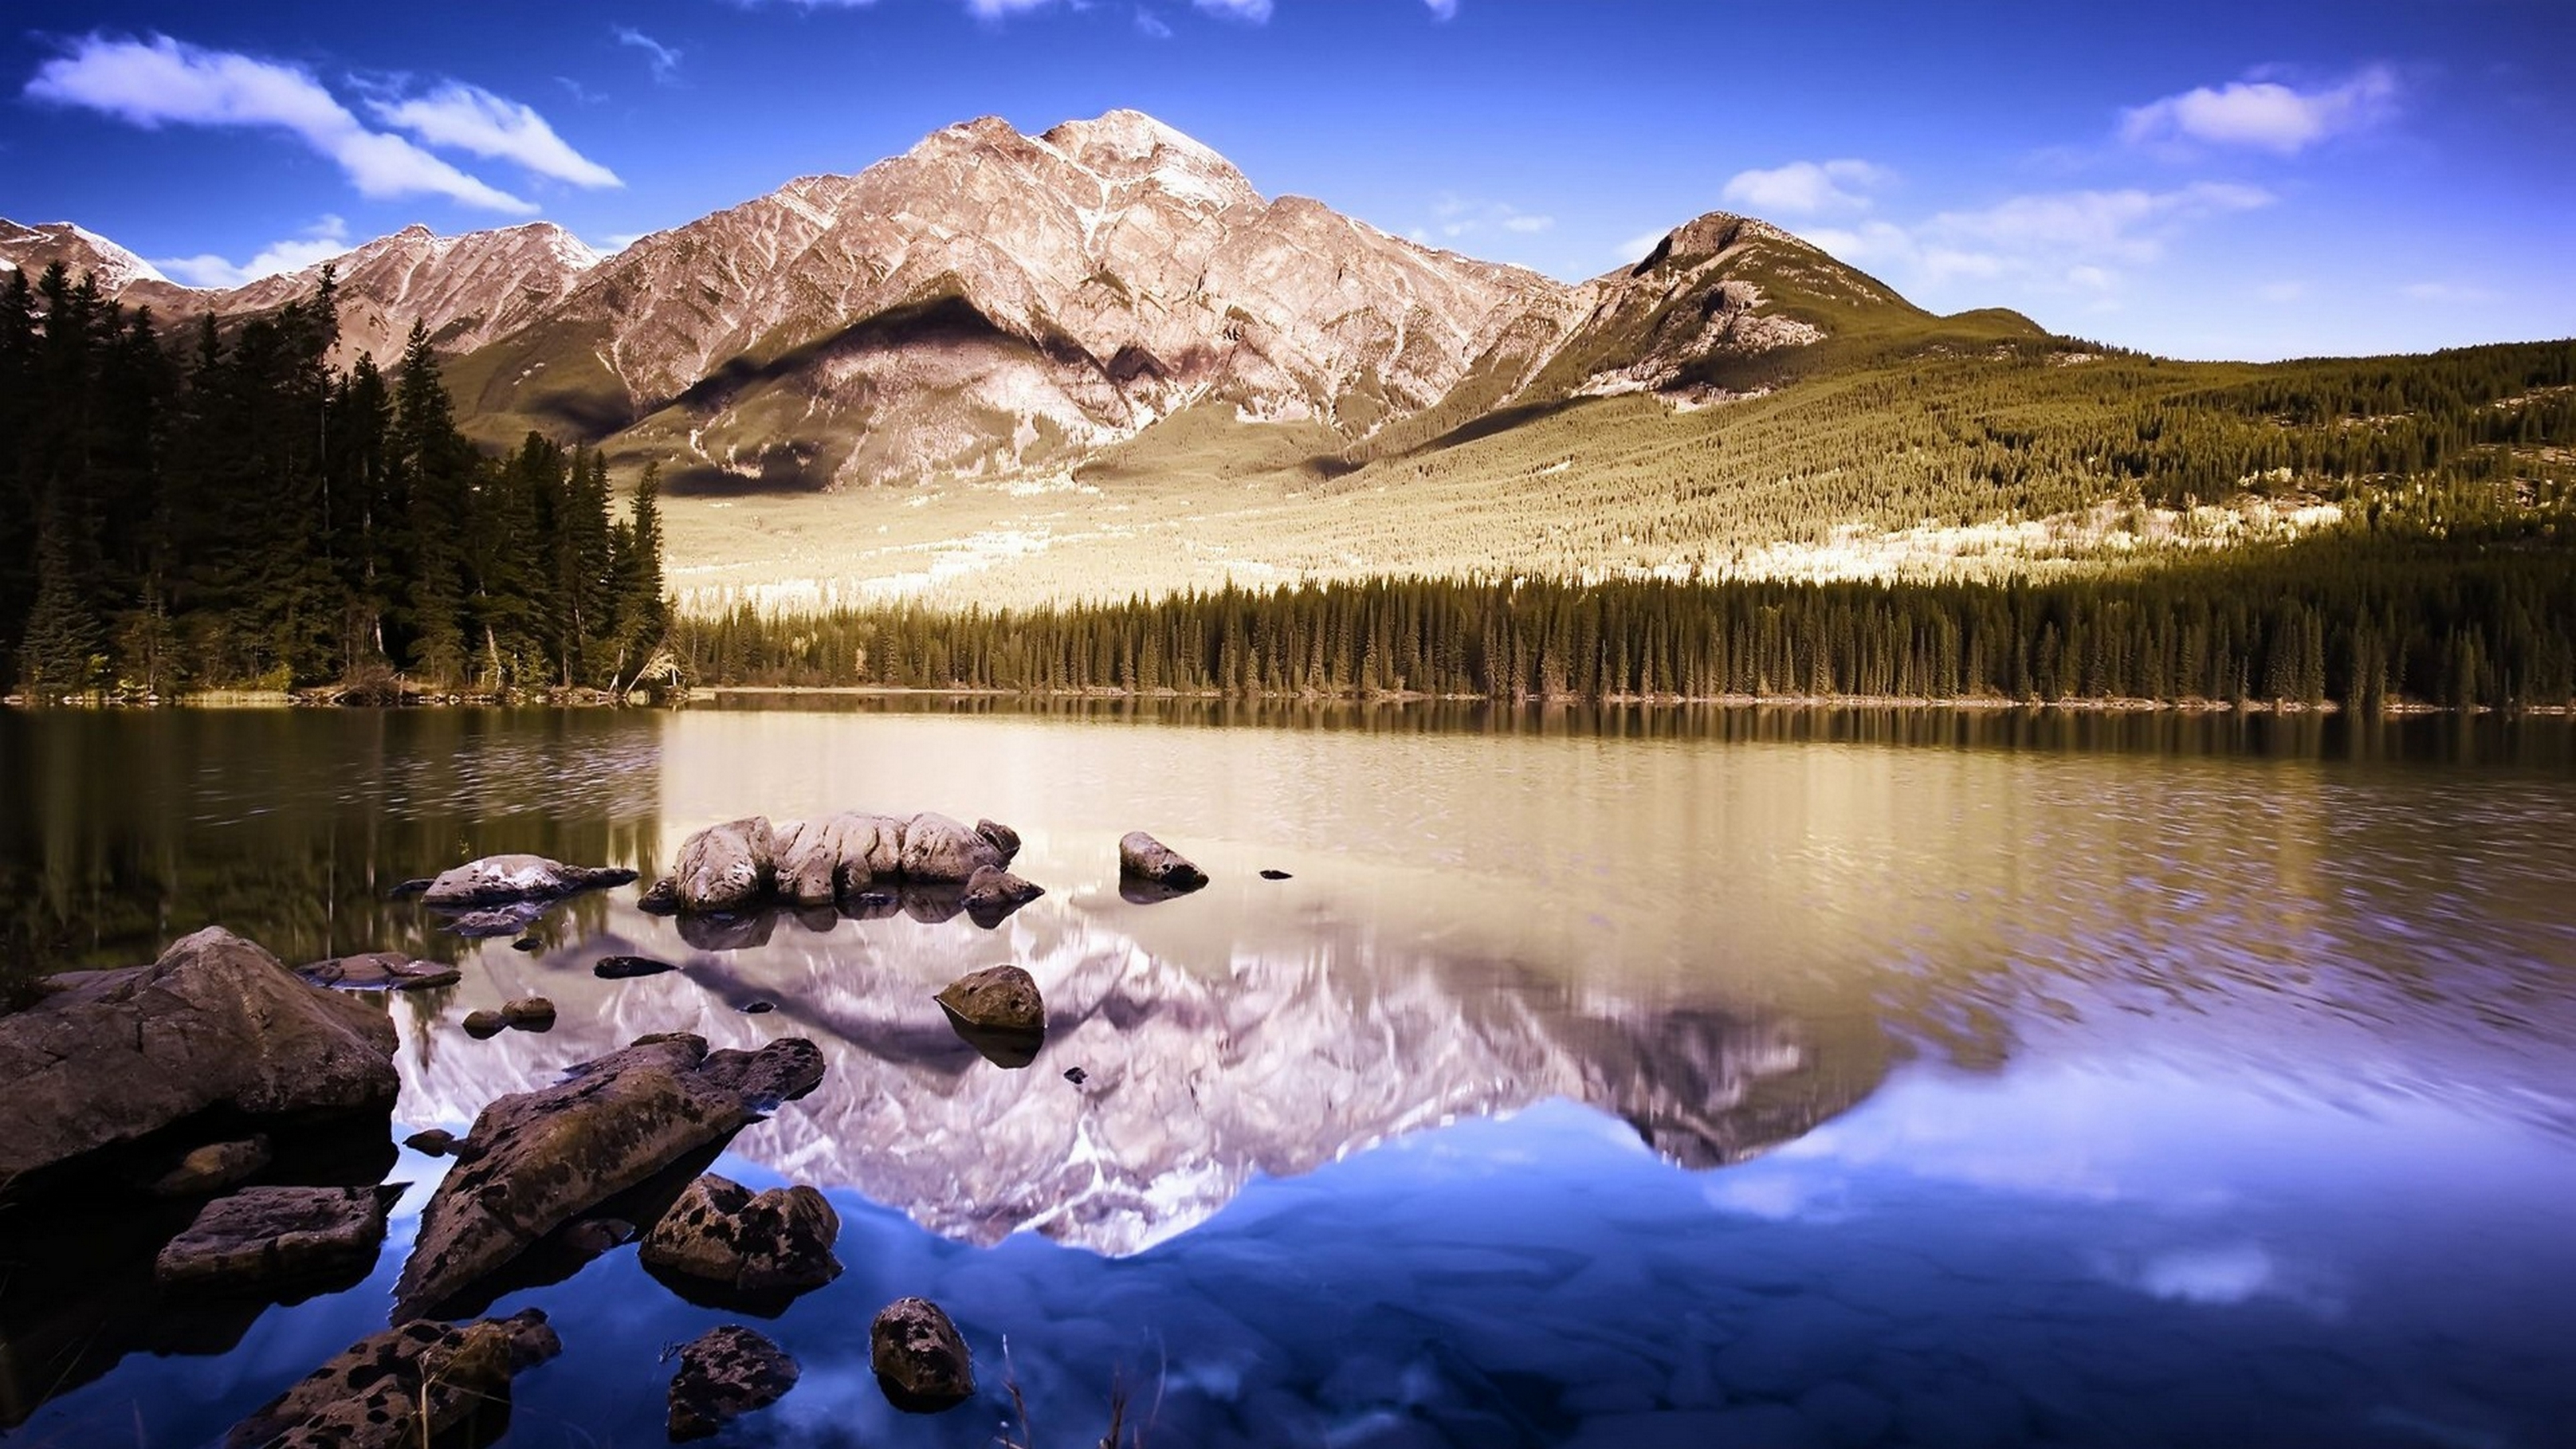 amazing mountain reflection 4k wallpaper background